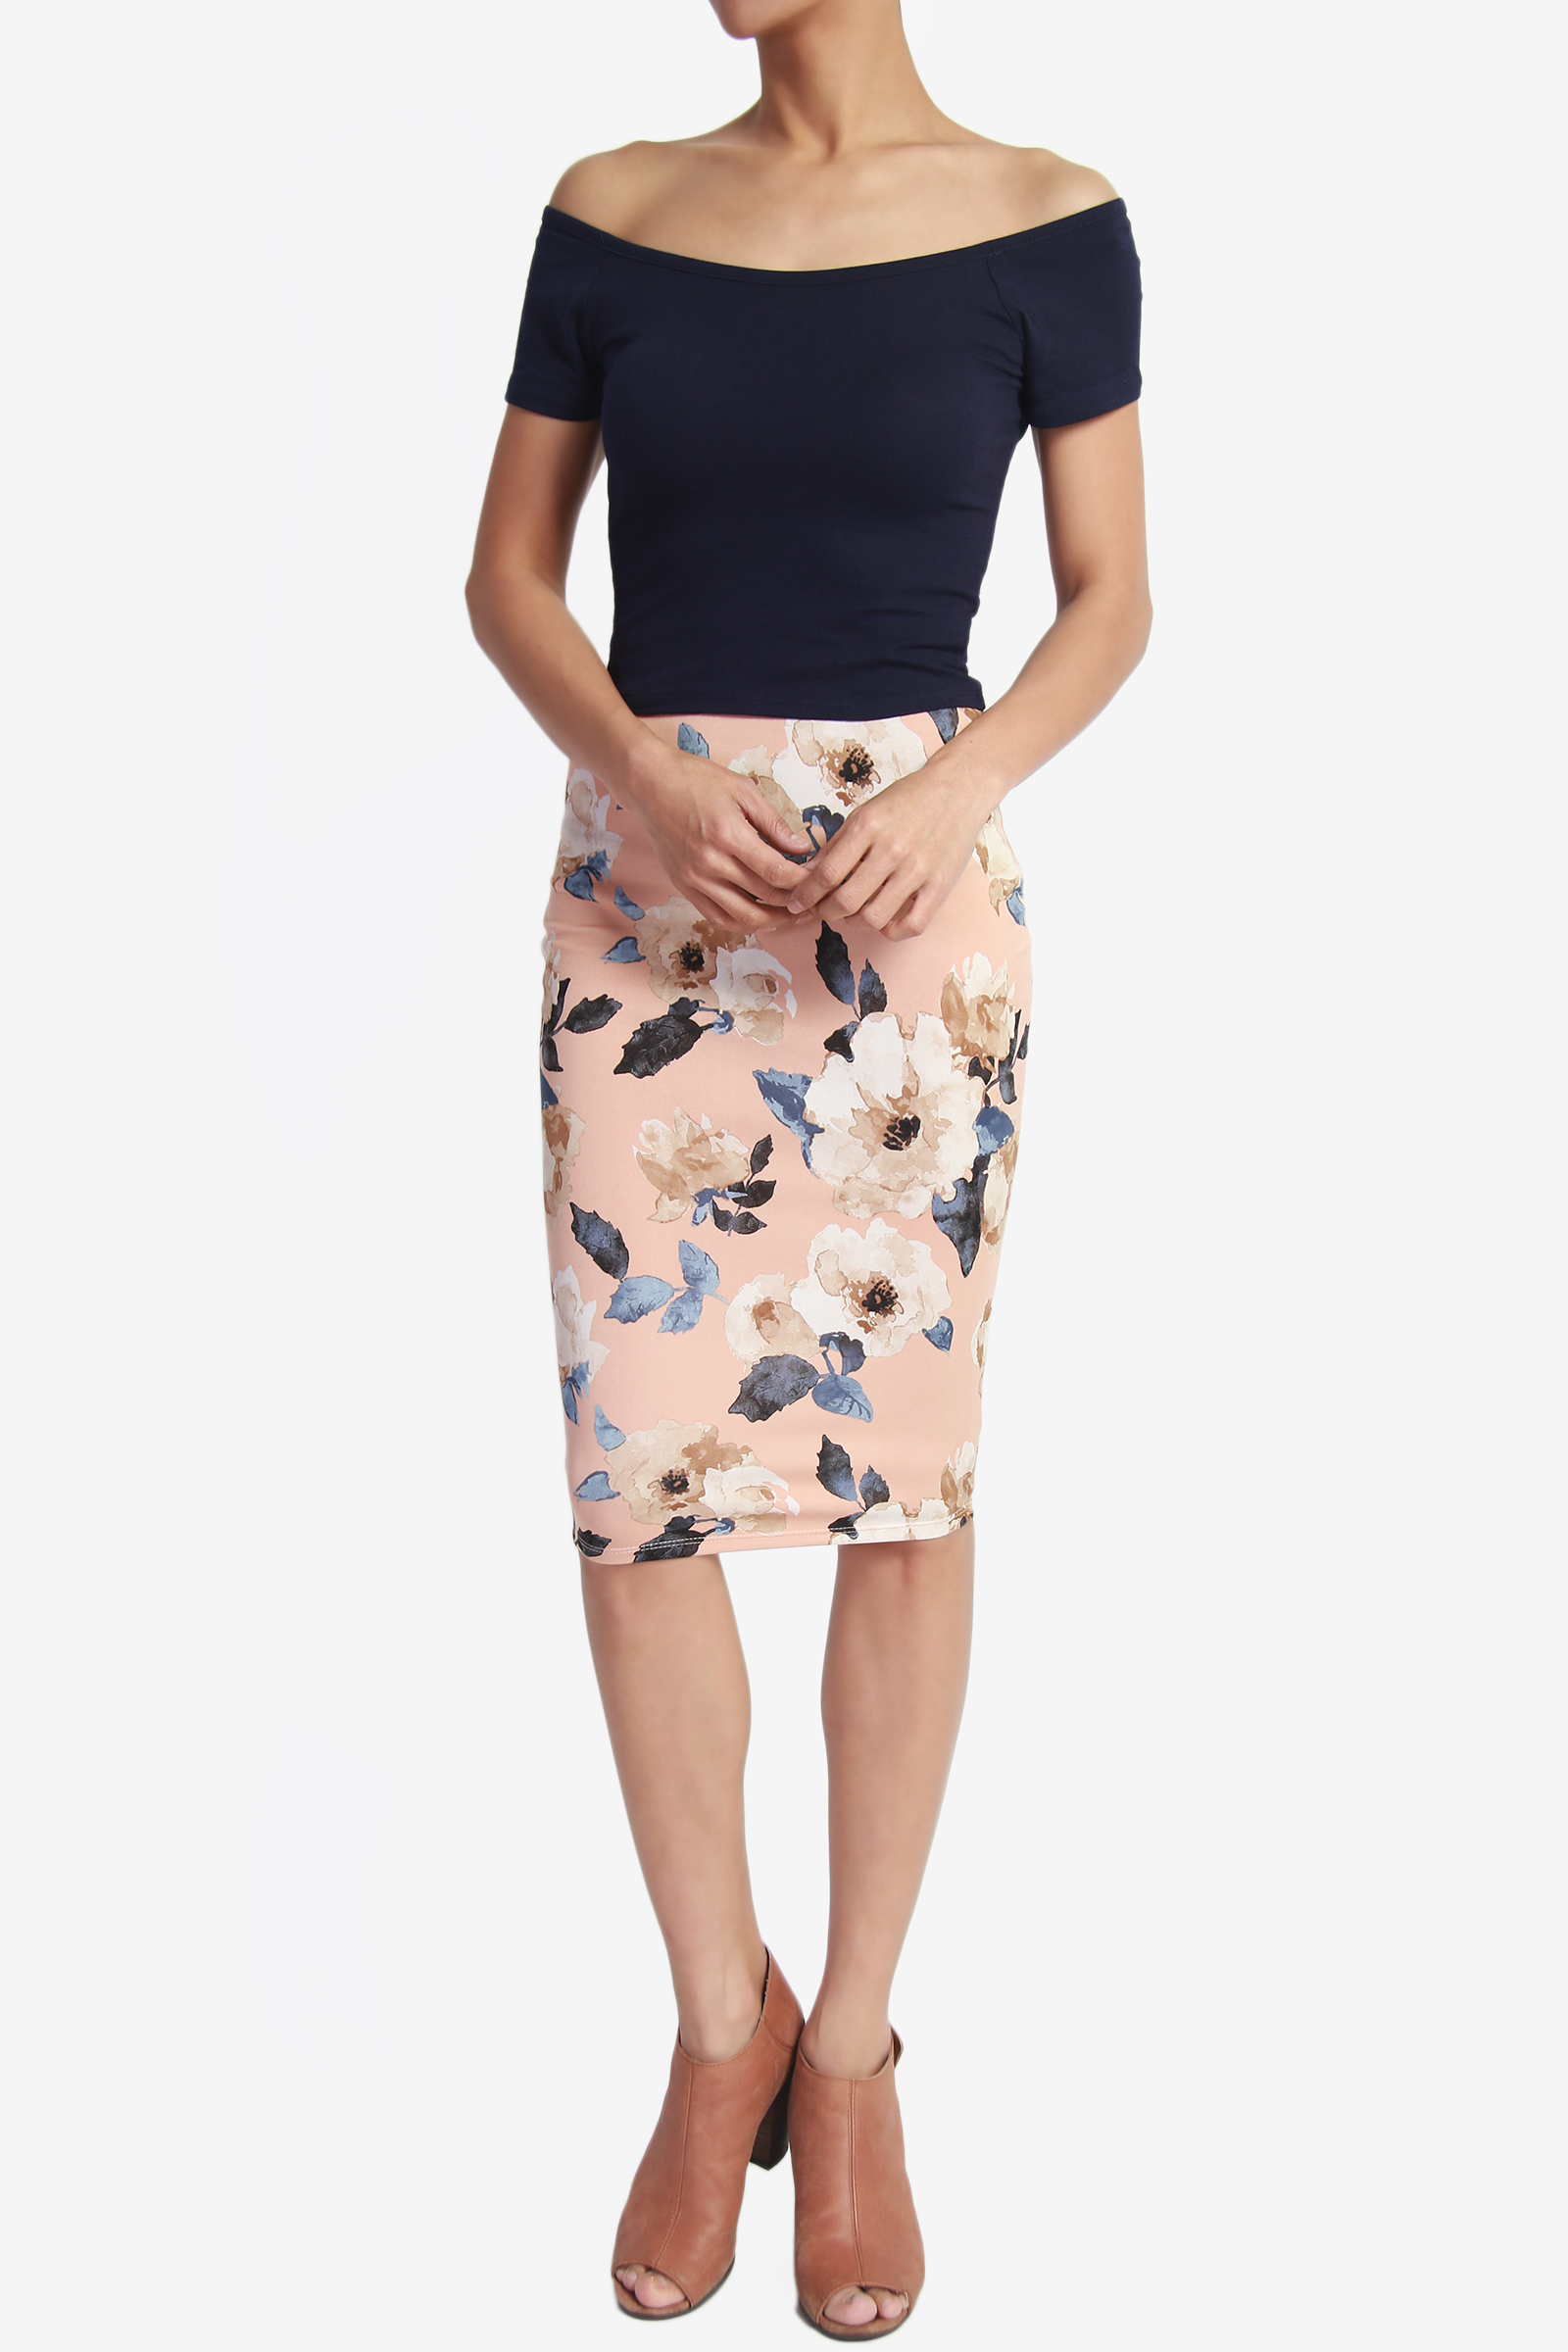 More Details Dolce & Gabbana Classic Suiting Knee-Length Pencil Skirt Details Dolce & Gabbana skirt in classic suiting. Approx. 26